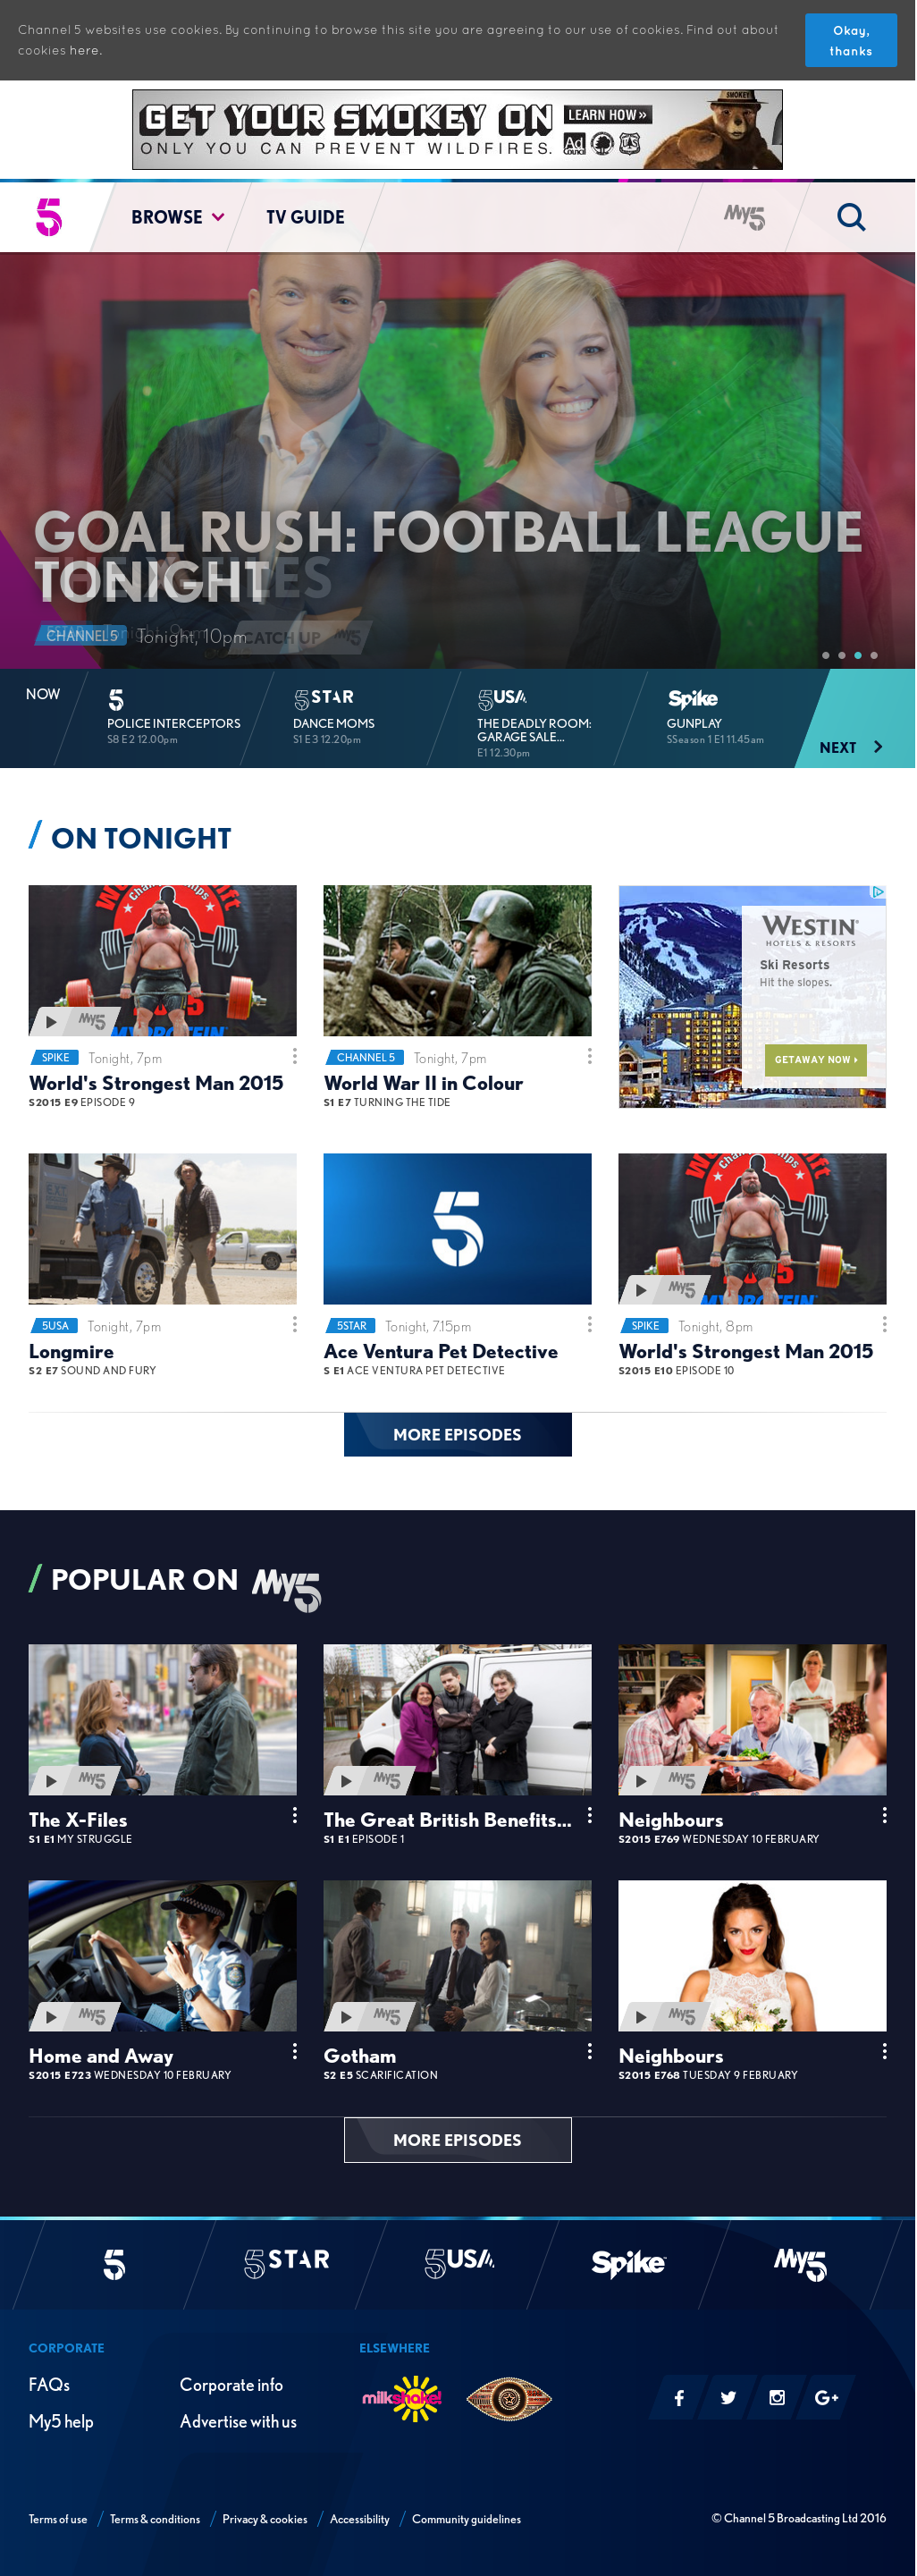 Channel 5 Competitors, Revenue and Employees - Owler Company